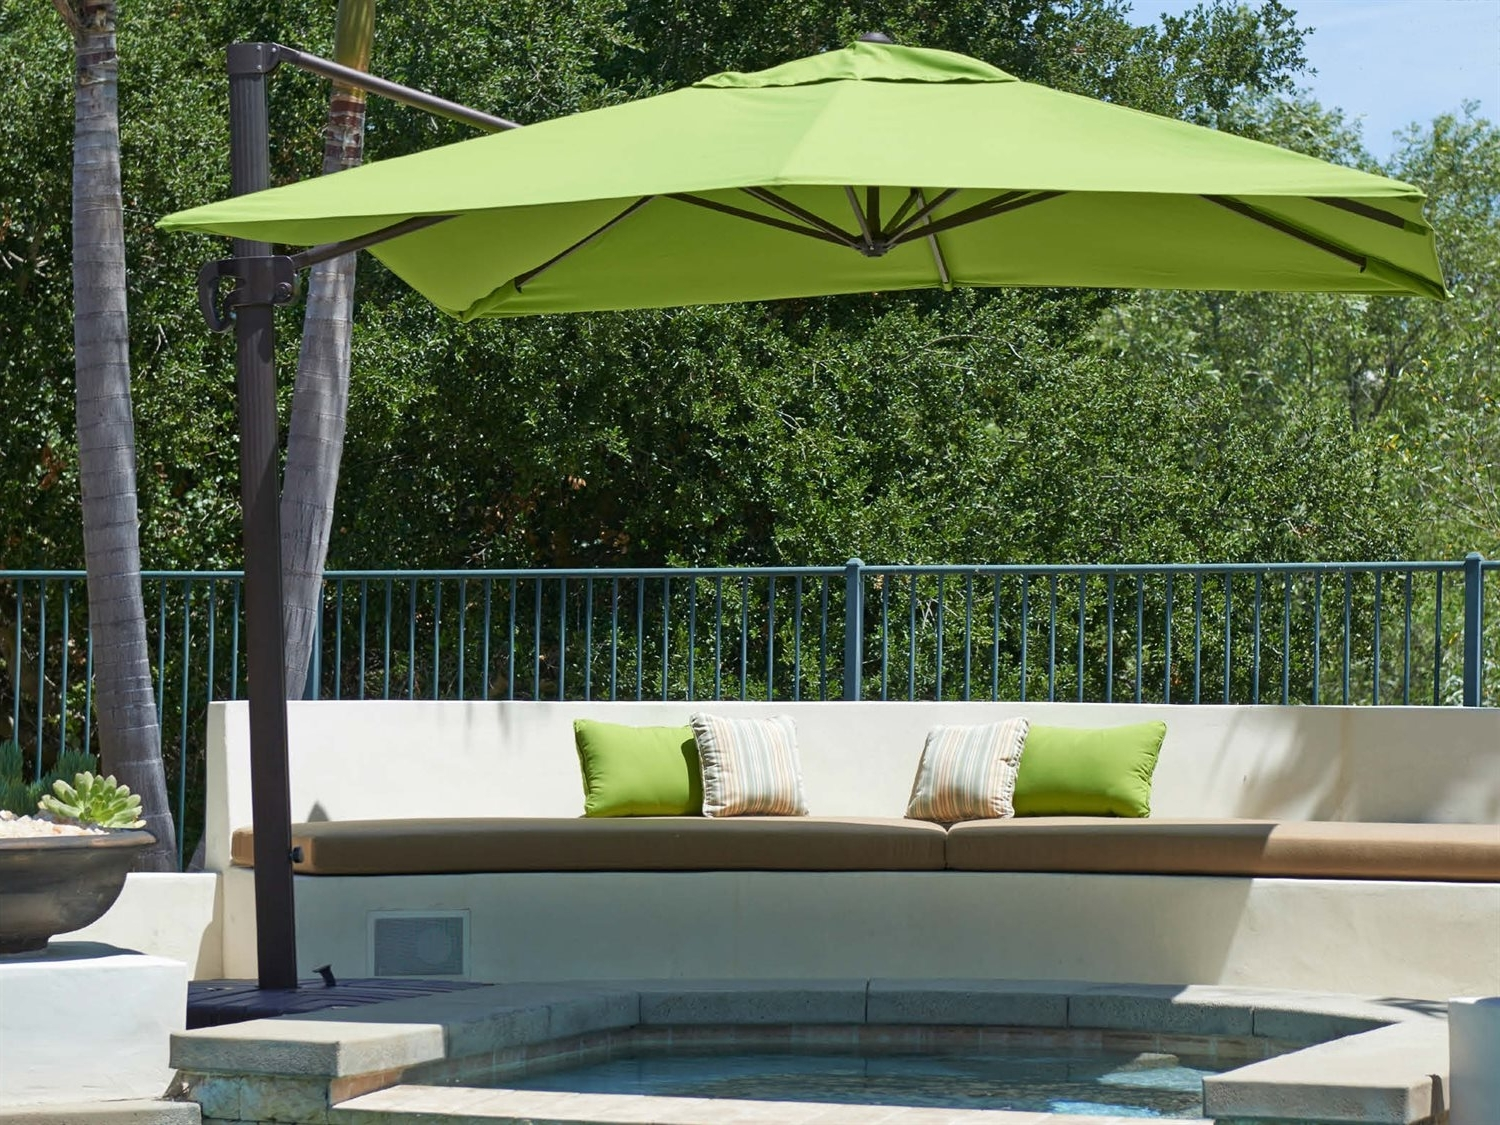 Most Popular Garden: Enchanting Outdoor Patio Decor Ideas With Patio Umbrellas With Regard To Rectangle Patio Umbrellas (View 14 of 20)